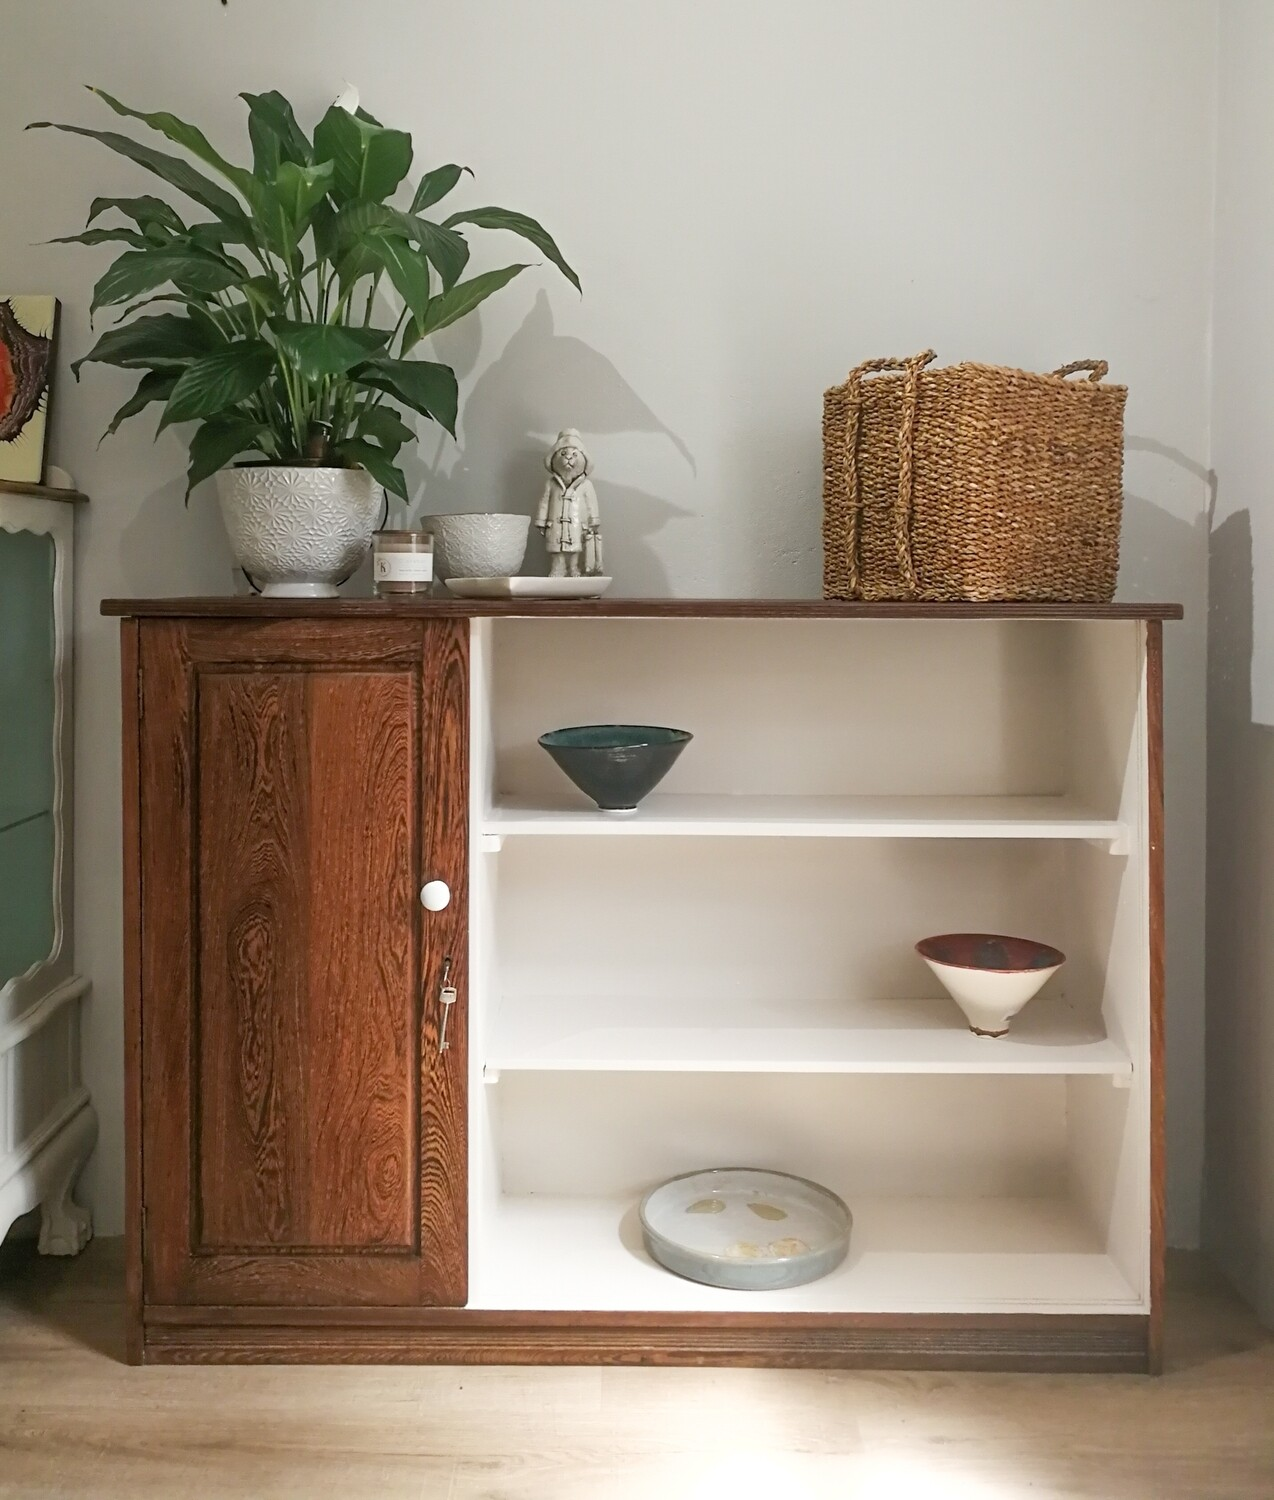 Bookcase - Partridge wood